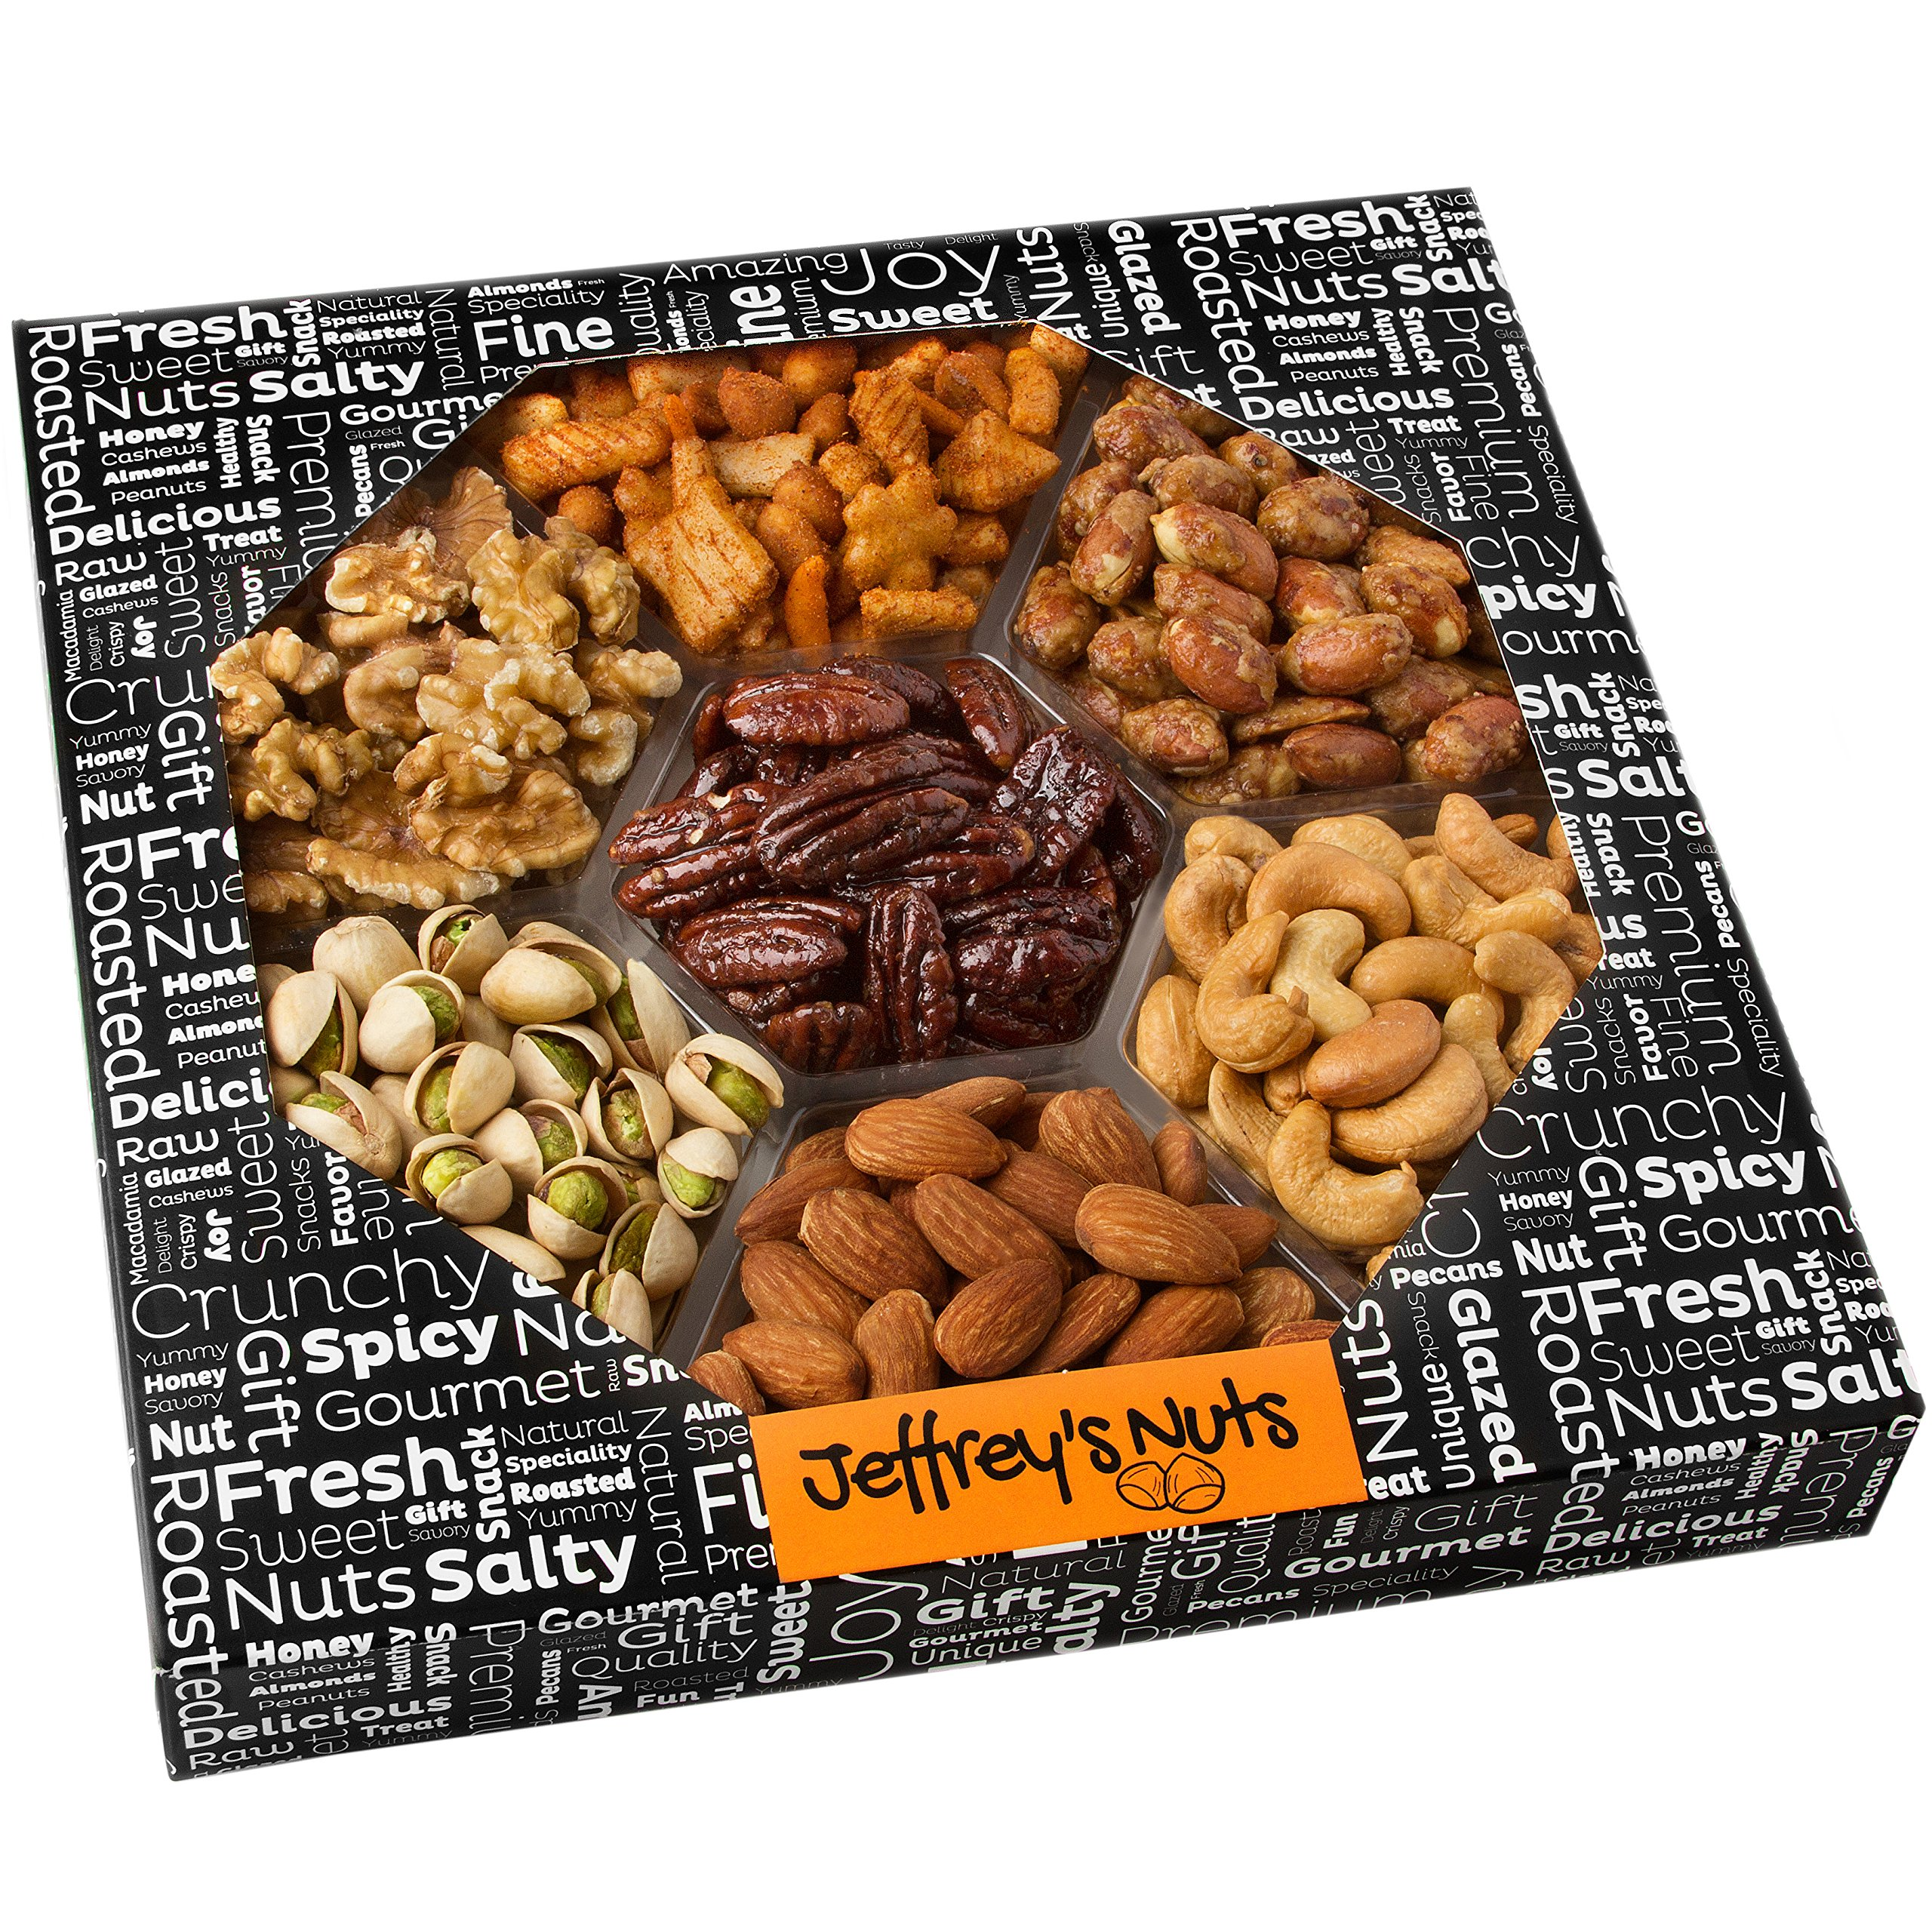 Jeffrey's Nuts Christmas, Holiday Nut Gift Basket for Men - Thanksgiving Baskets Variety Assortment, Prime Corporate Food Delivery for Him or Her, Fresh & Gourmet Healthy Get Well Ideas or Birthday by Jeffrey's Nut